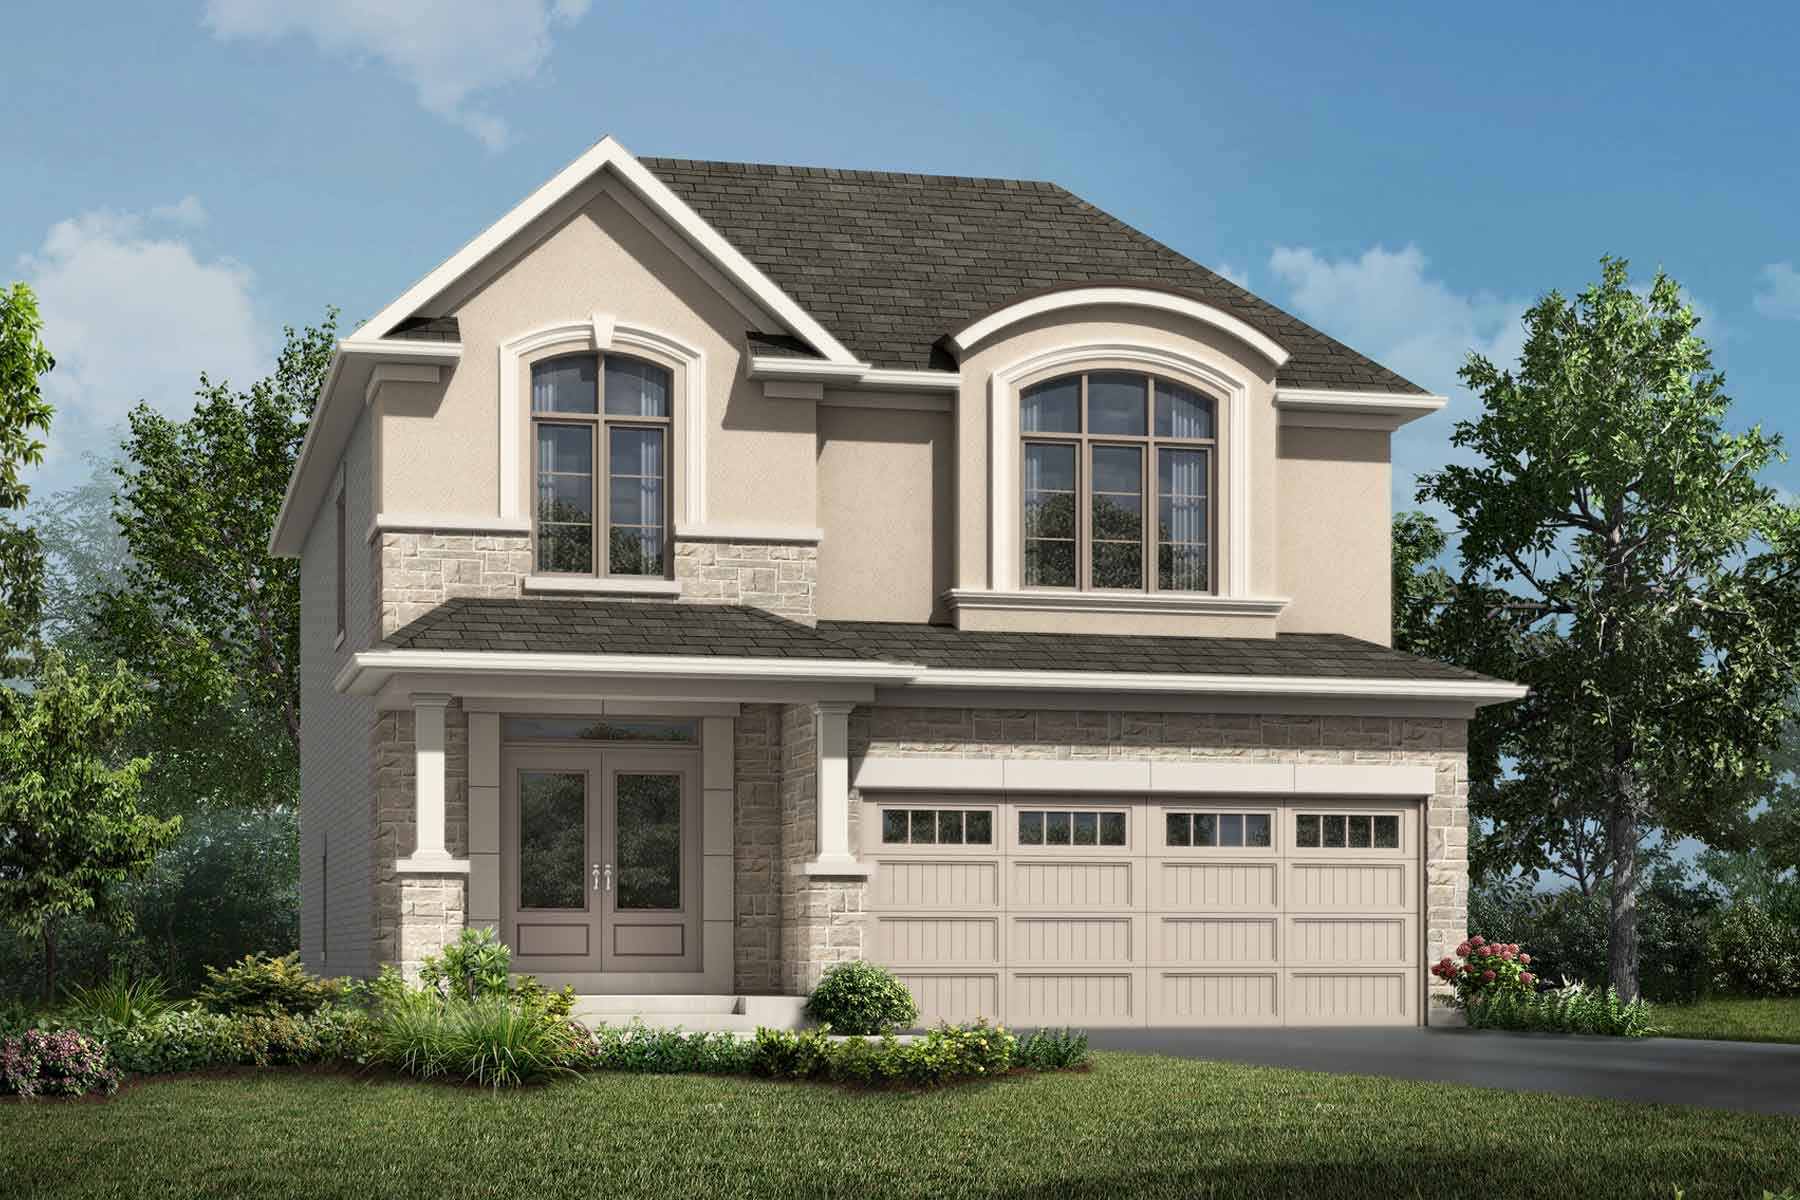 Granby Plan ElevationFrenchChateau_Soleil_Granby_Main at Soleil in Milton Ontario by Mattamy Homes